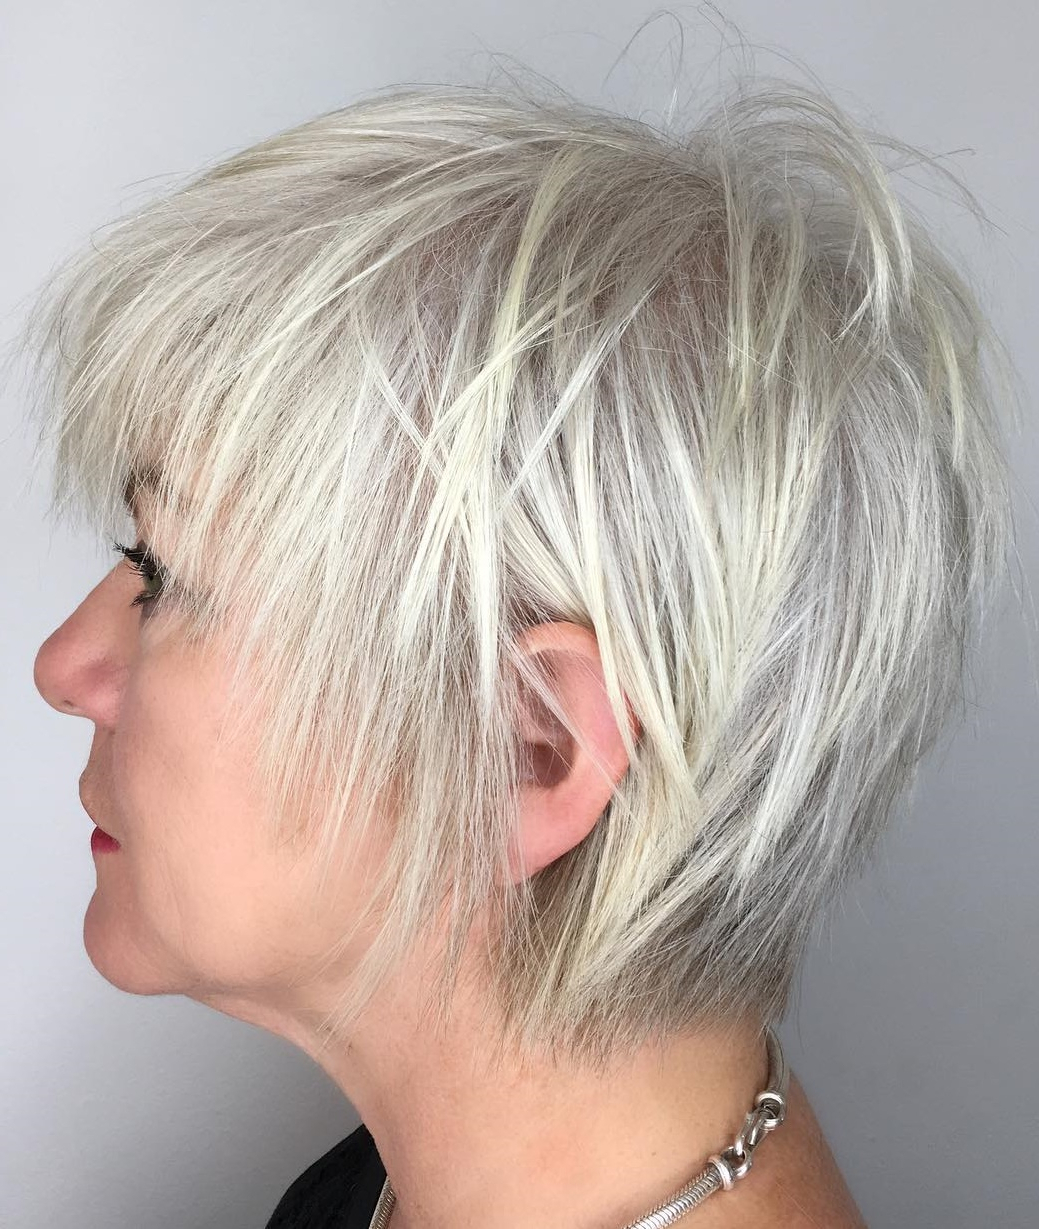 Most Recently Released Short Feathered Bob Crop Hairstyles For 60 Trendiest Hairstyles And Haircuts For Women Over 50 In (View 16 of 20)